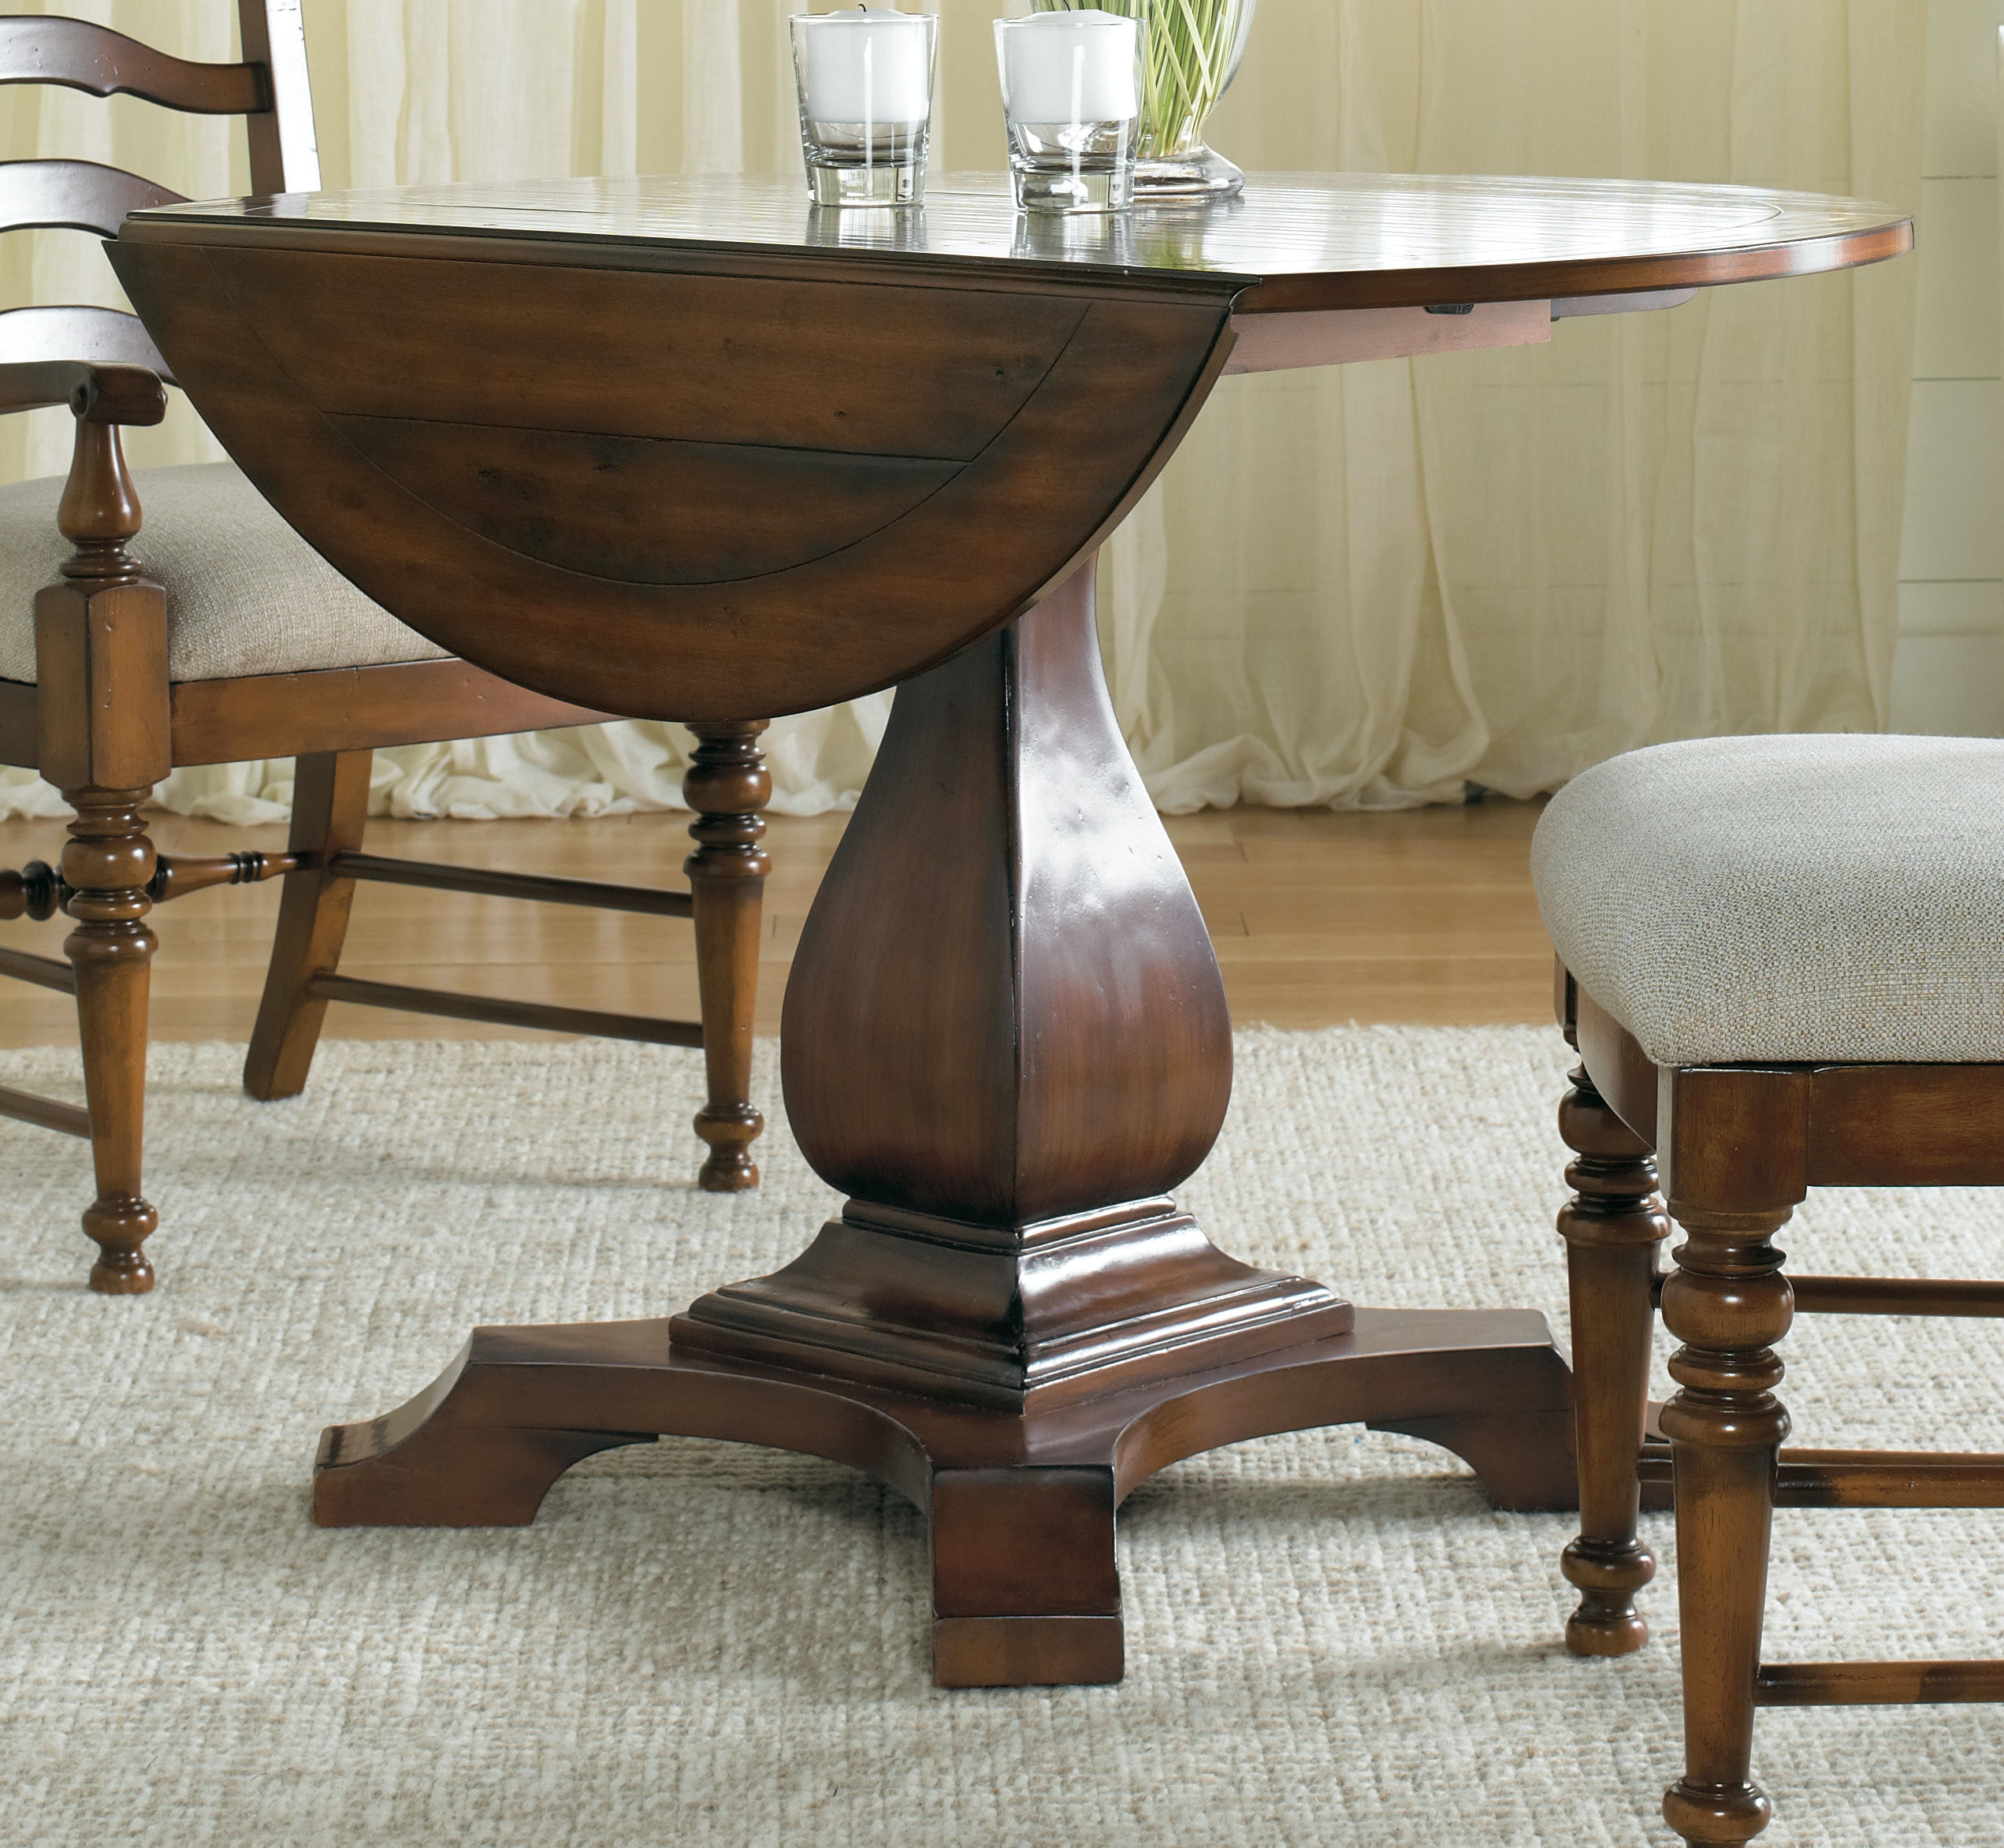 Exceptionnel Hooker Furniture Waverly Place Round Drop Leaf Pedestal Table HS36675218  From Walter E. Smithe Furniture